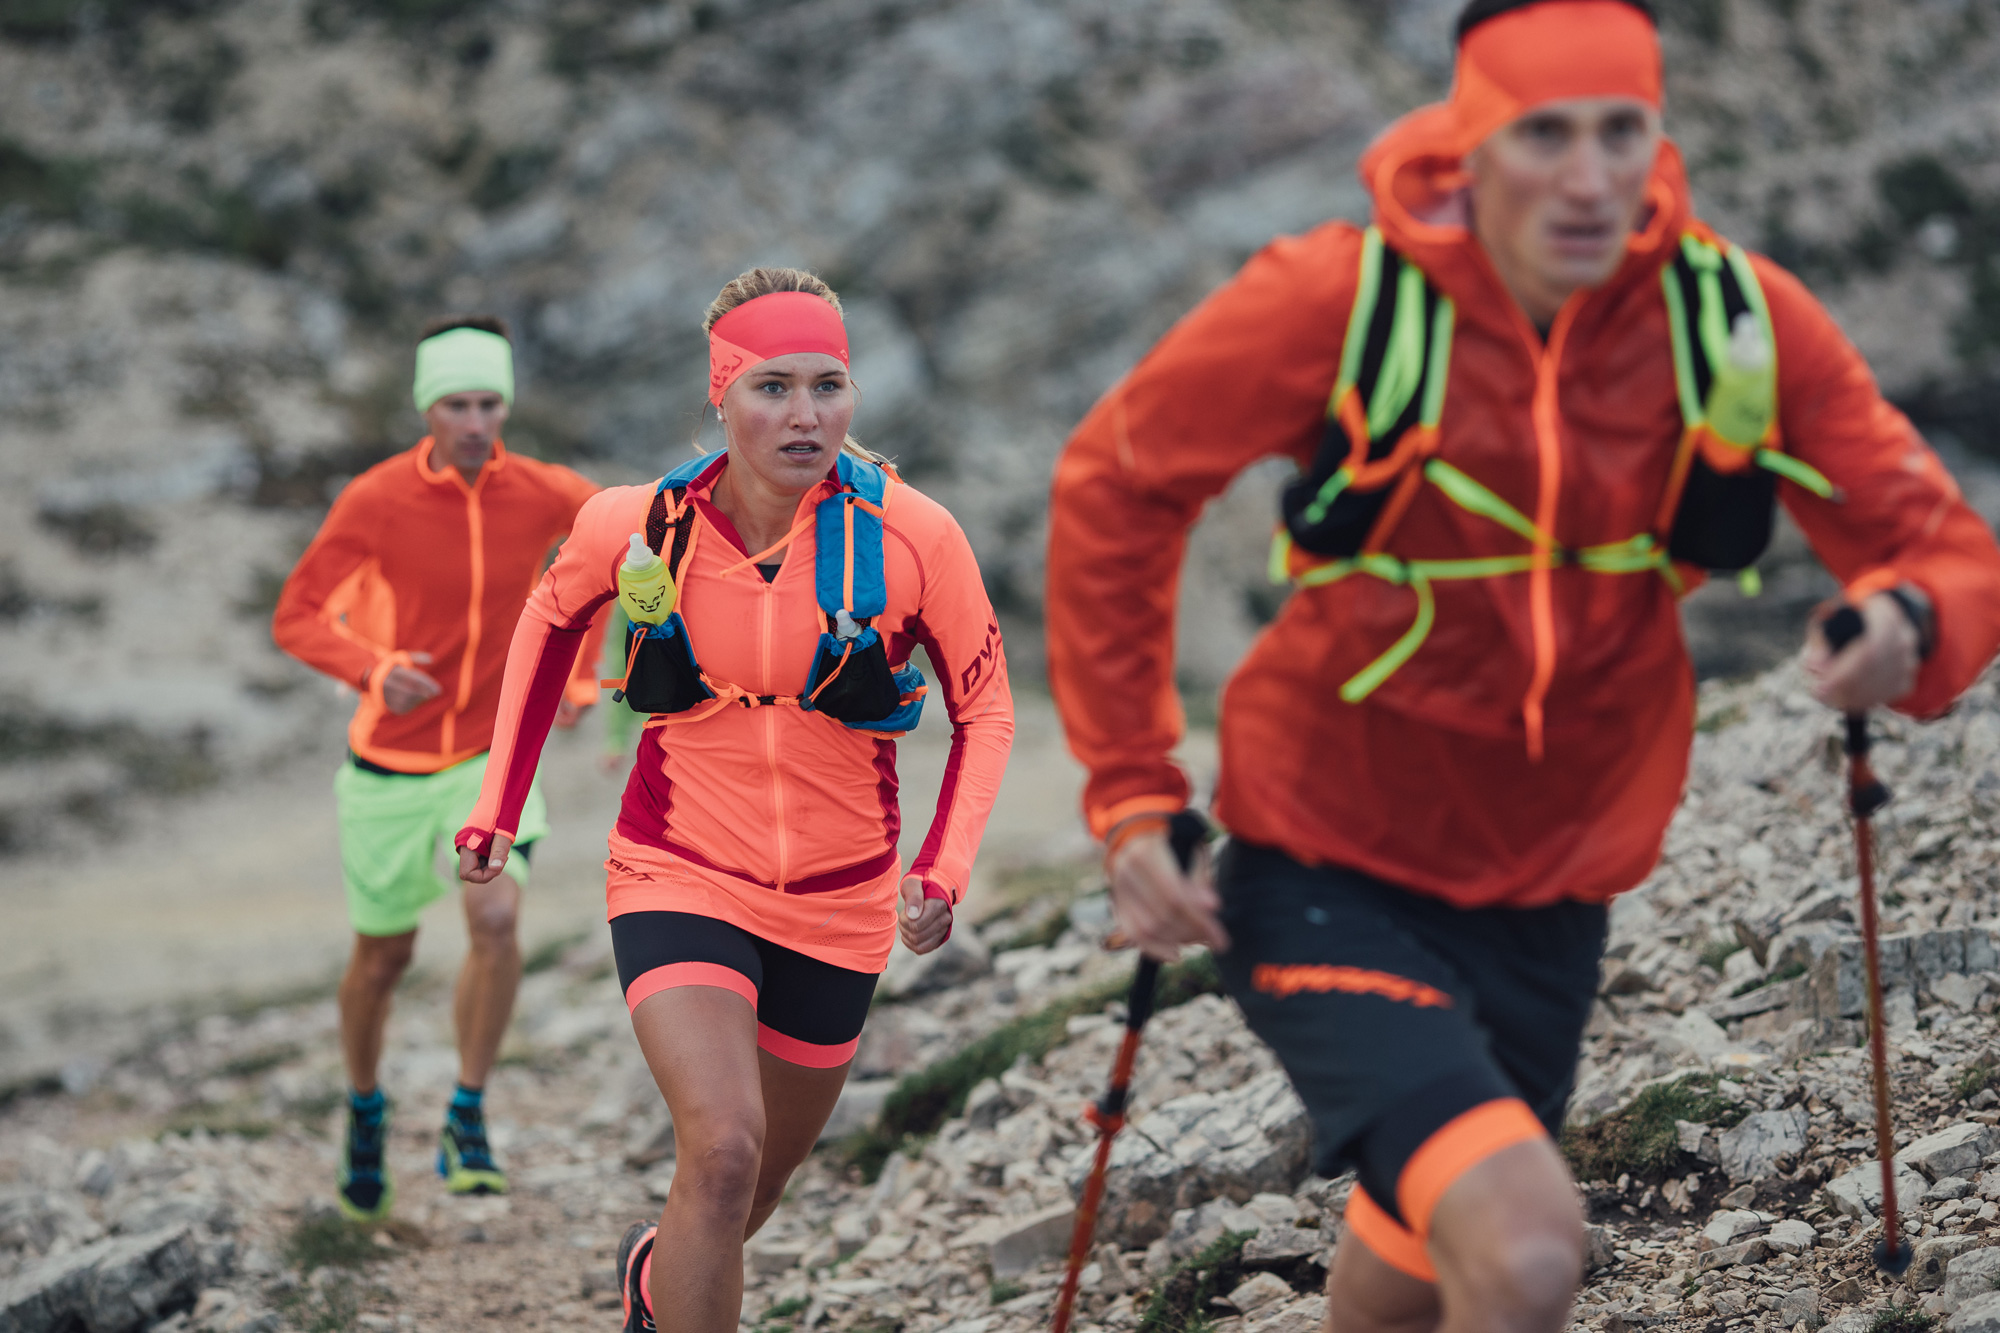 Trail running group with a running backpack